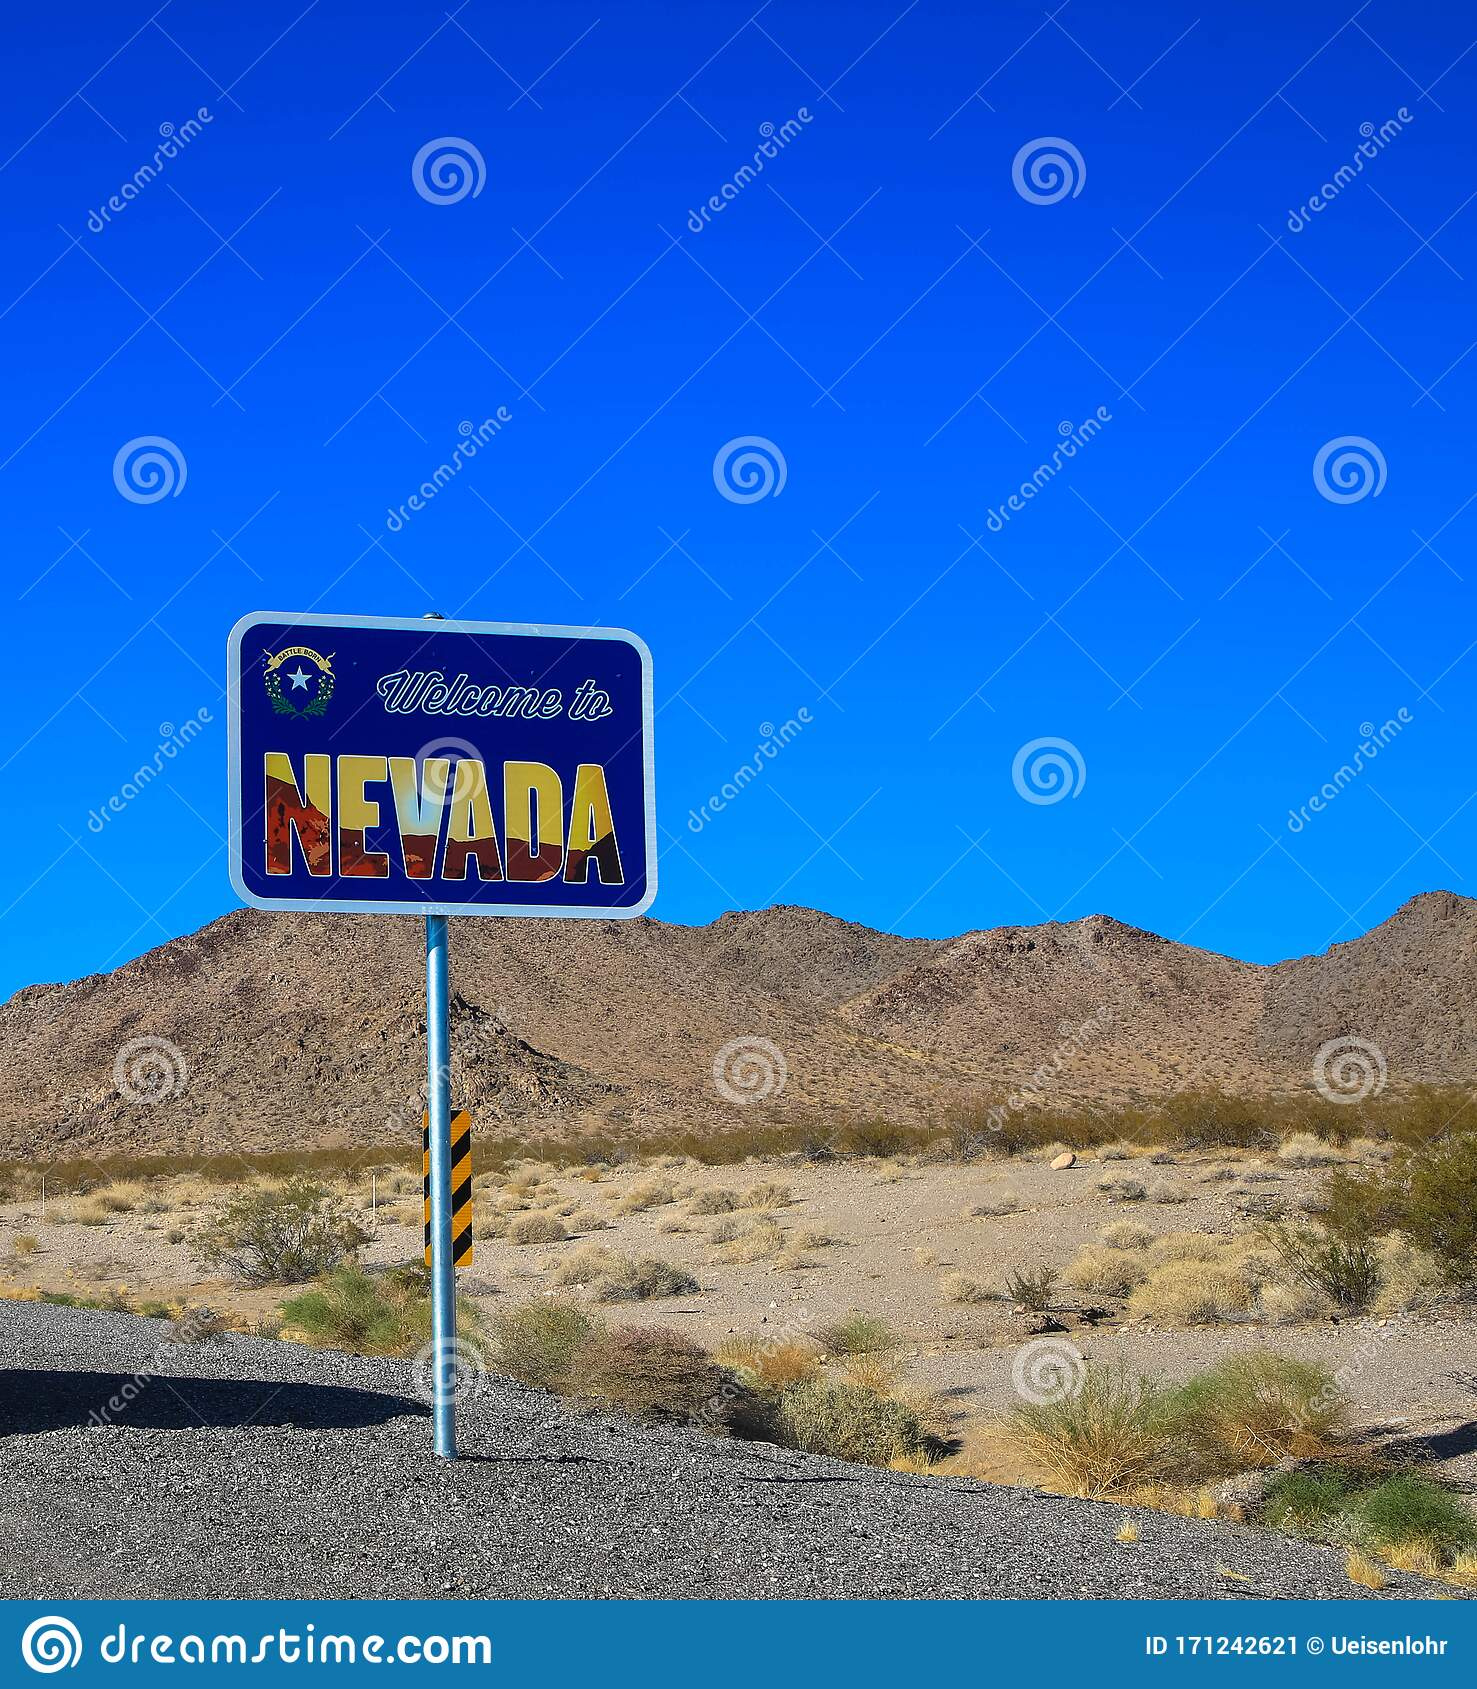 Welcome To Nevada State Border Sign Stock Photo - Image